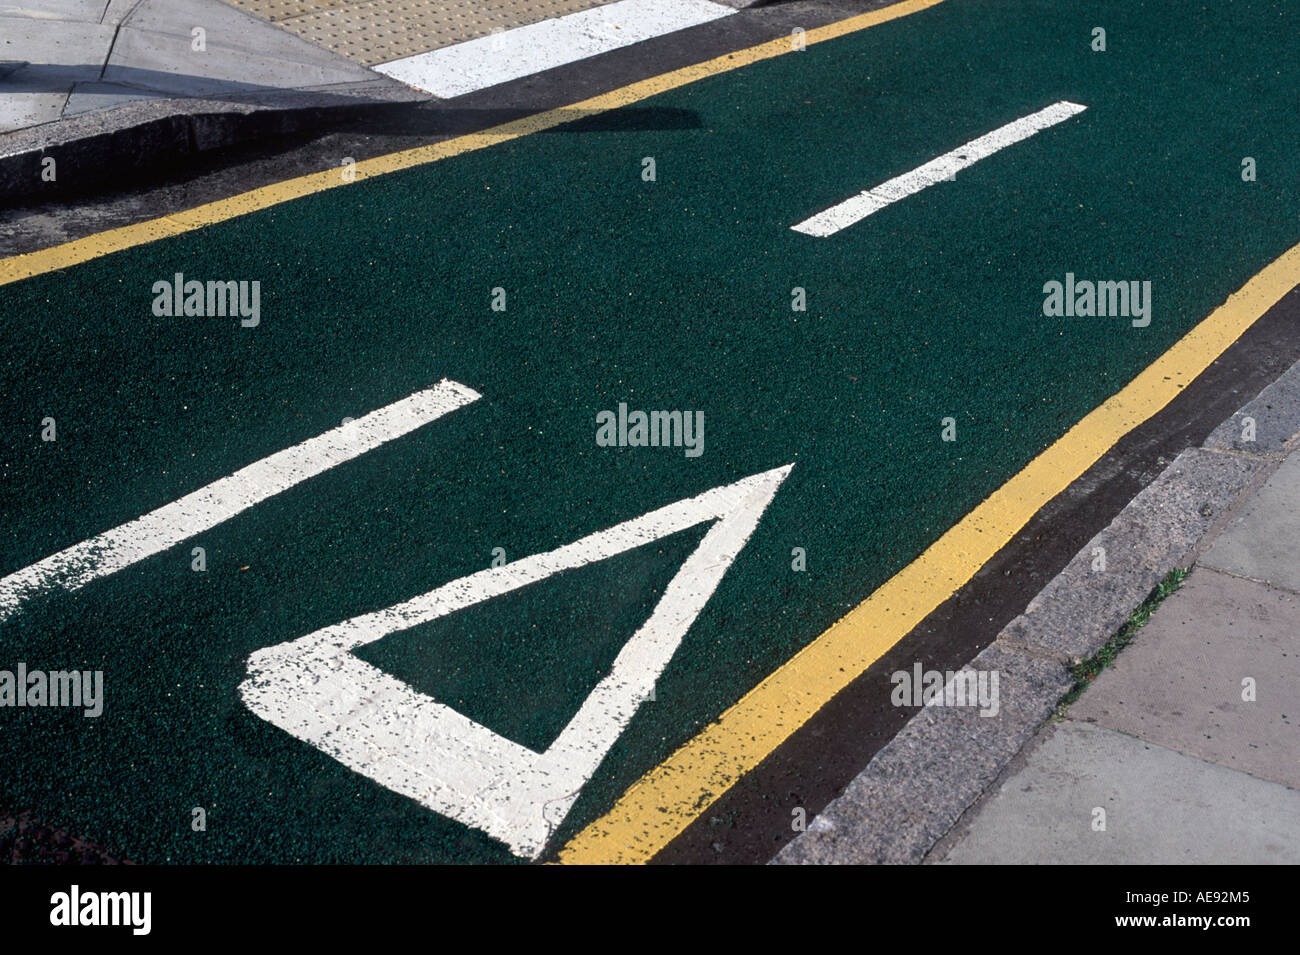 Segregated, two-way cycle lane with freshly layed green tarmac and yellow and white markings, King's Cross, London, England - Stock Image